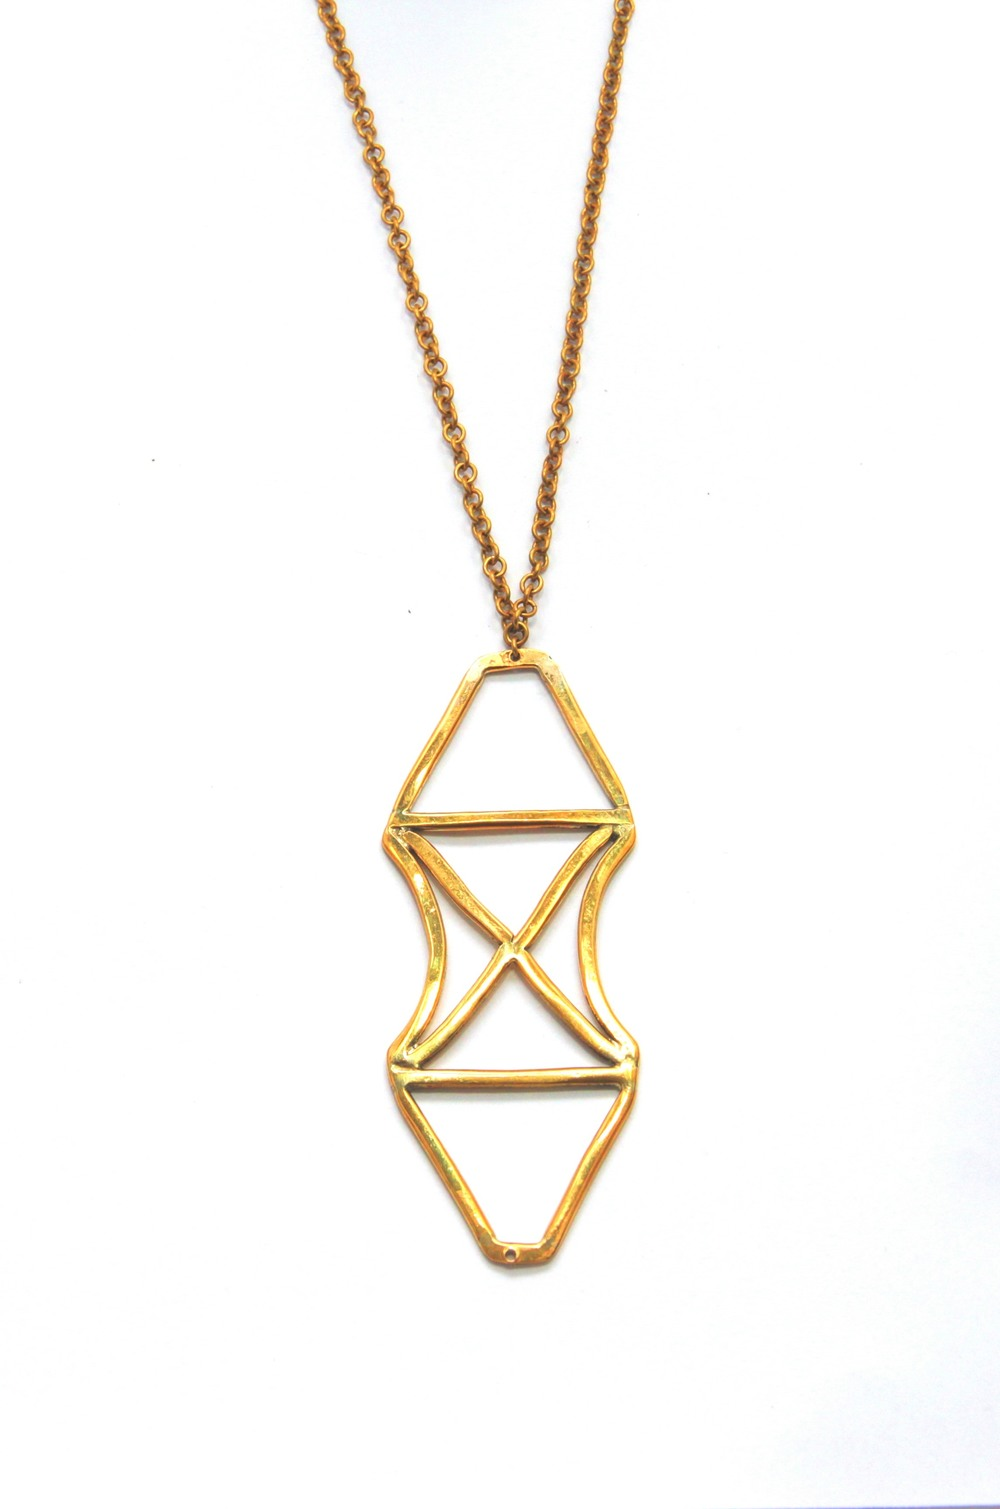 Axis Necklace - CN005.jpg